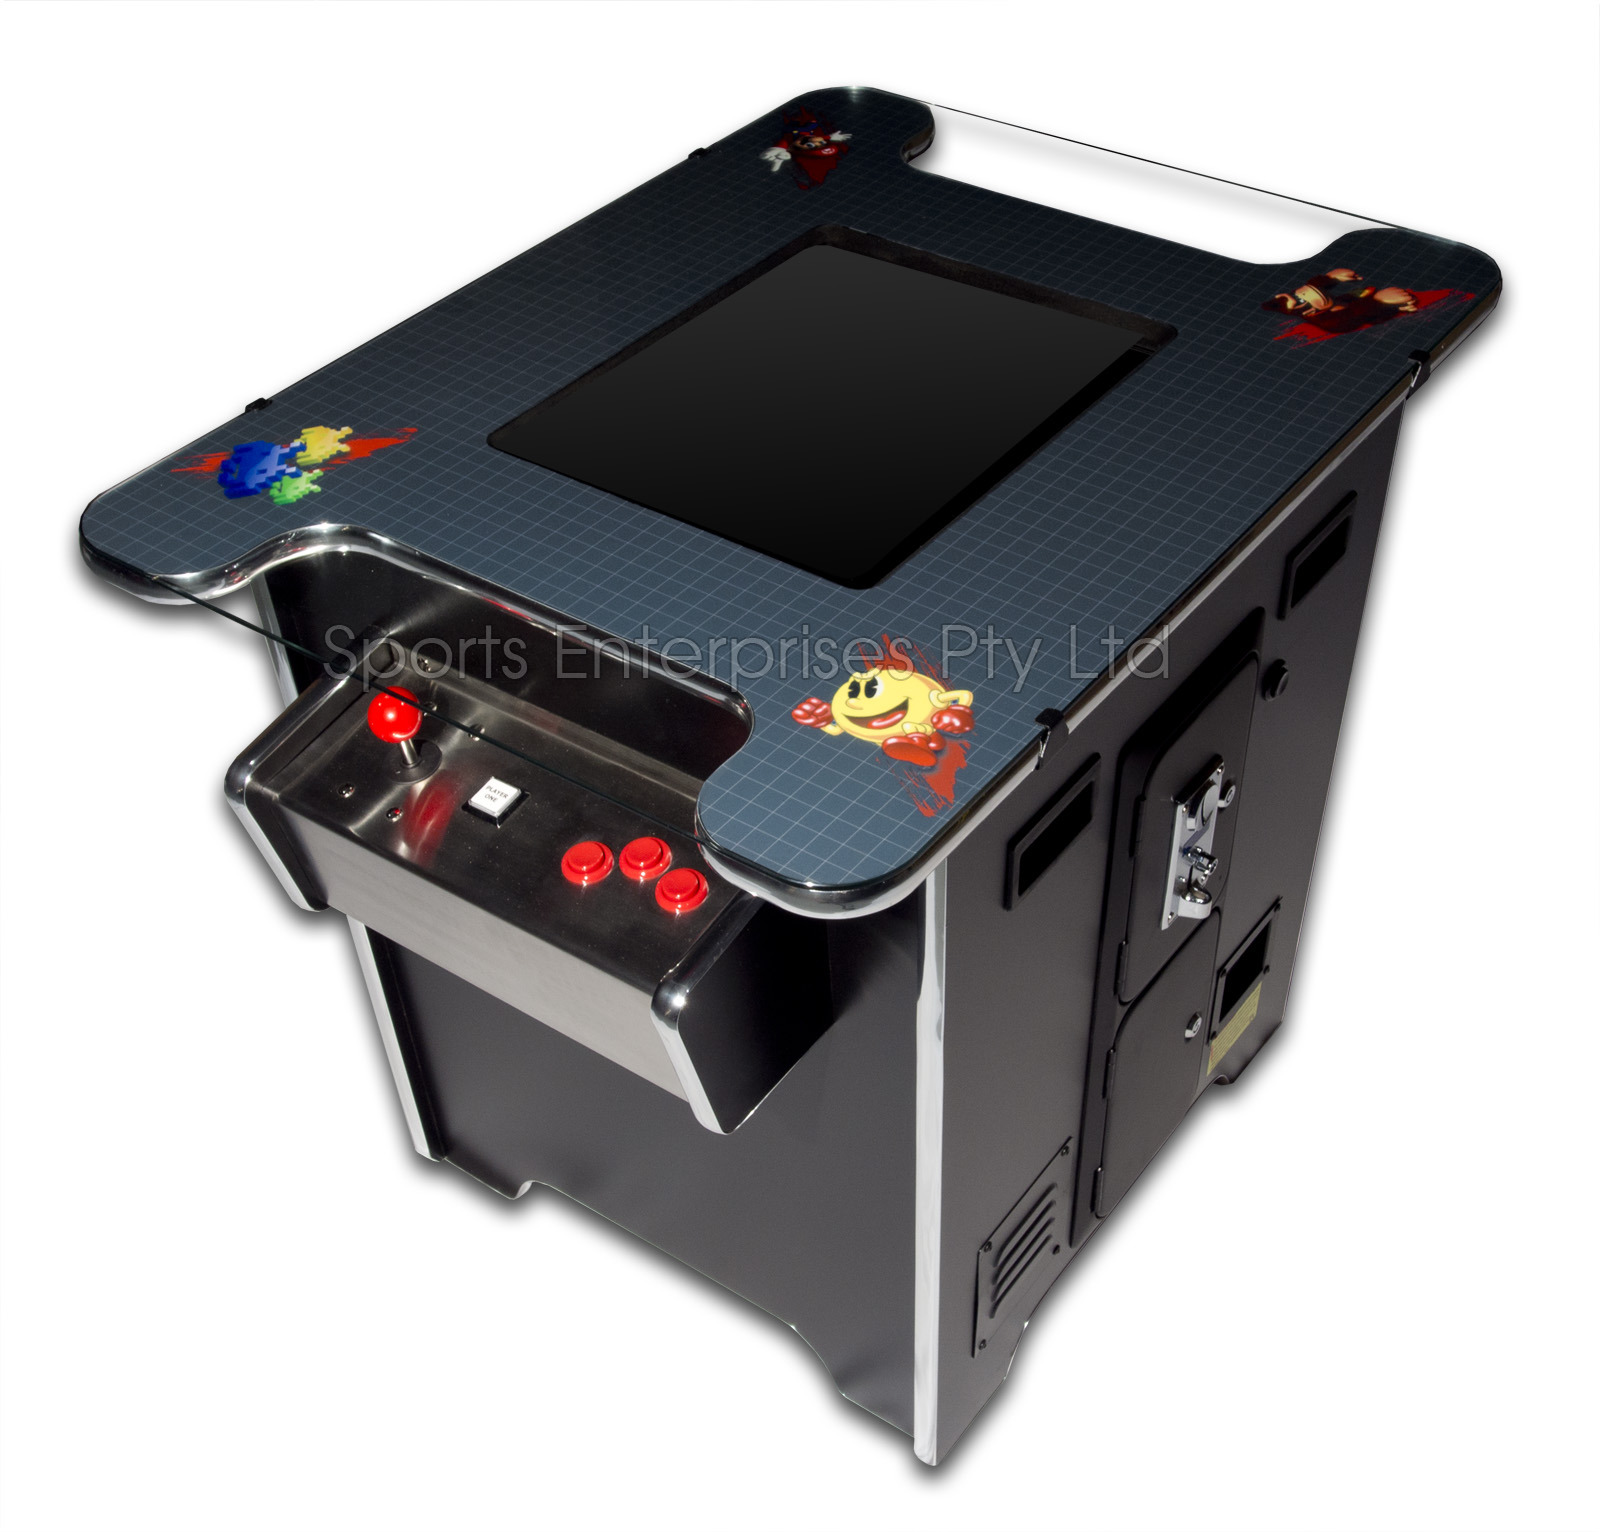 cool arcade machine